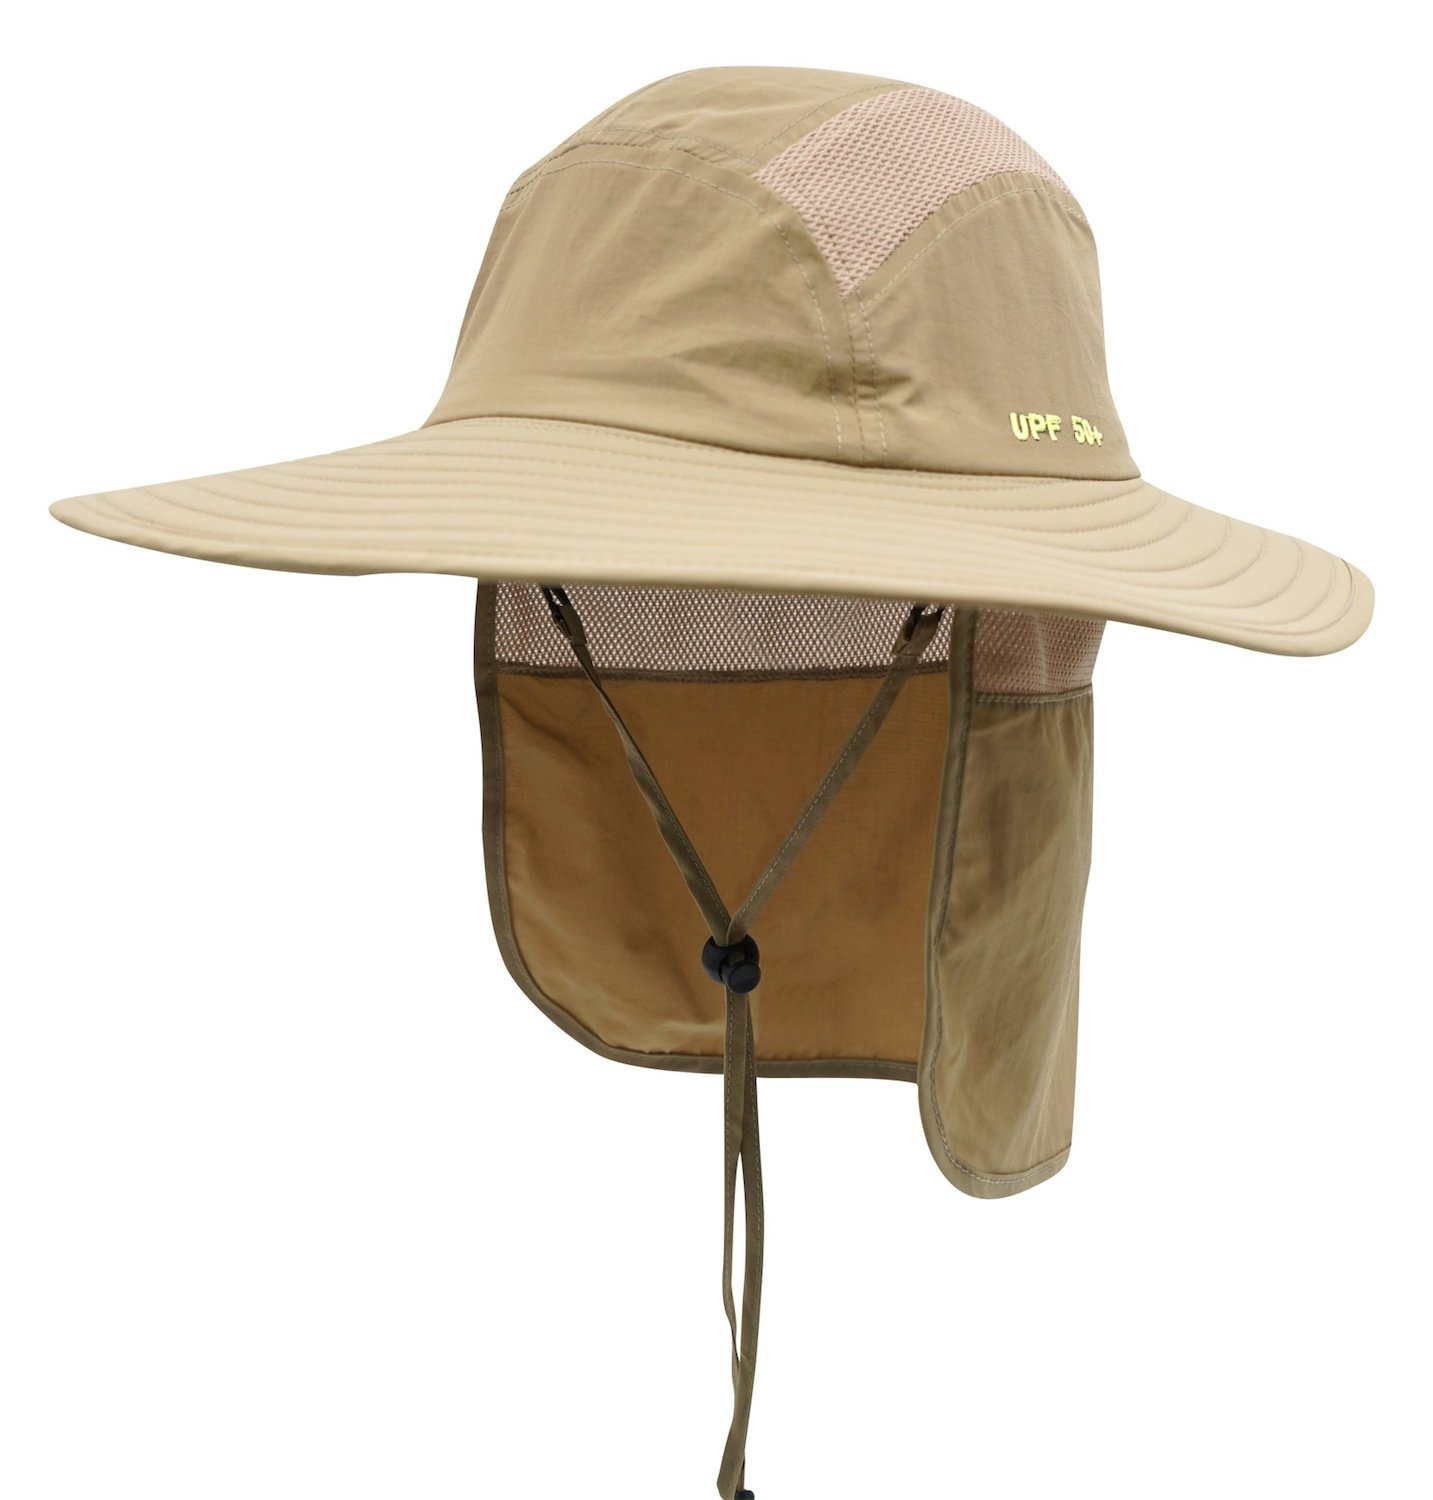 Home Prefer Adult UPF 50+ Sun Protection Cap Wide Brim Fishing Hat with Neck Flap Khaki